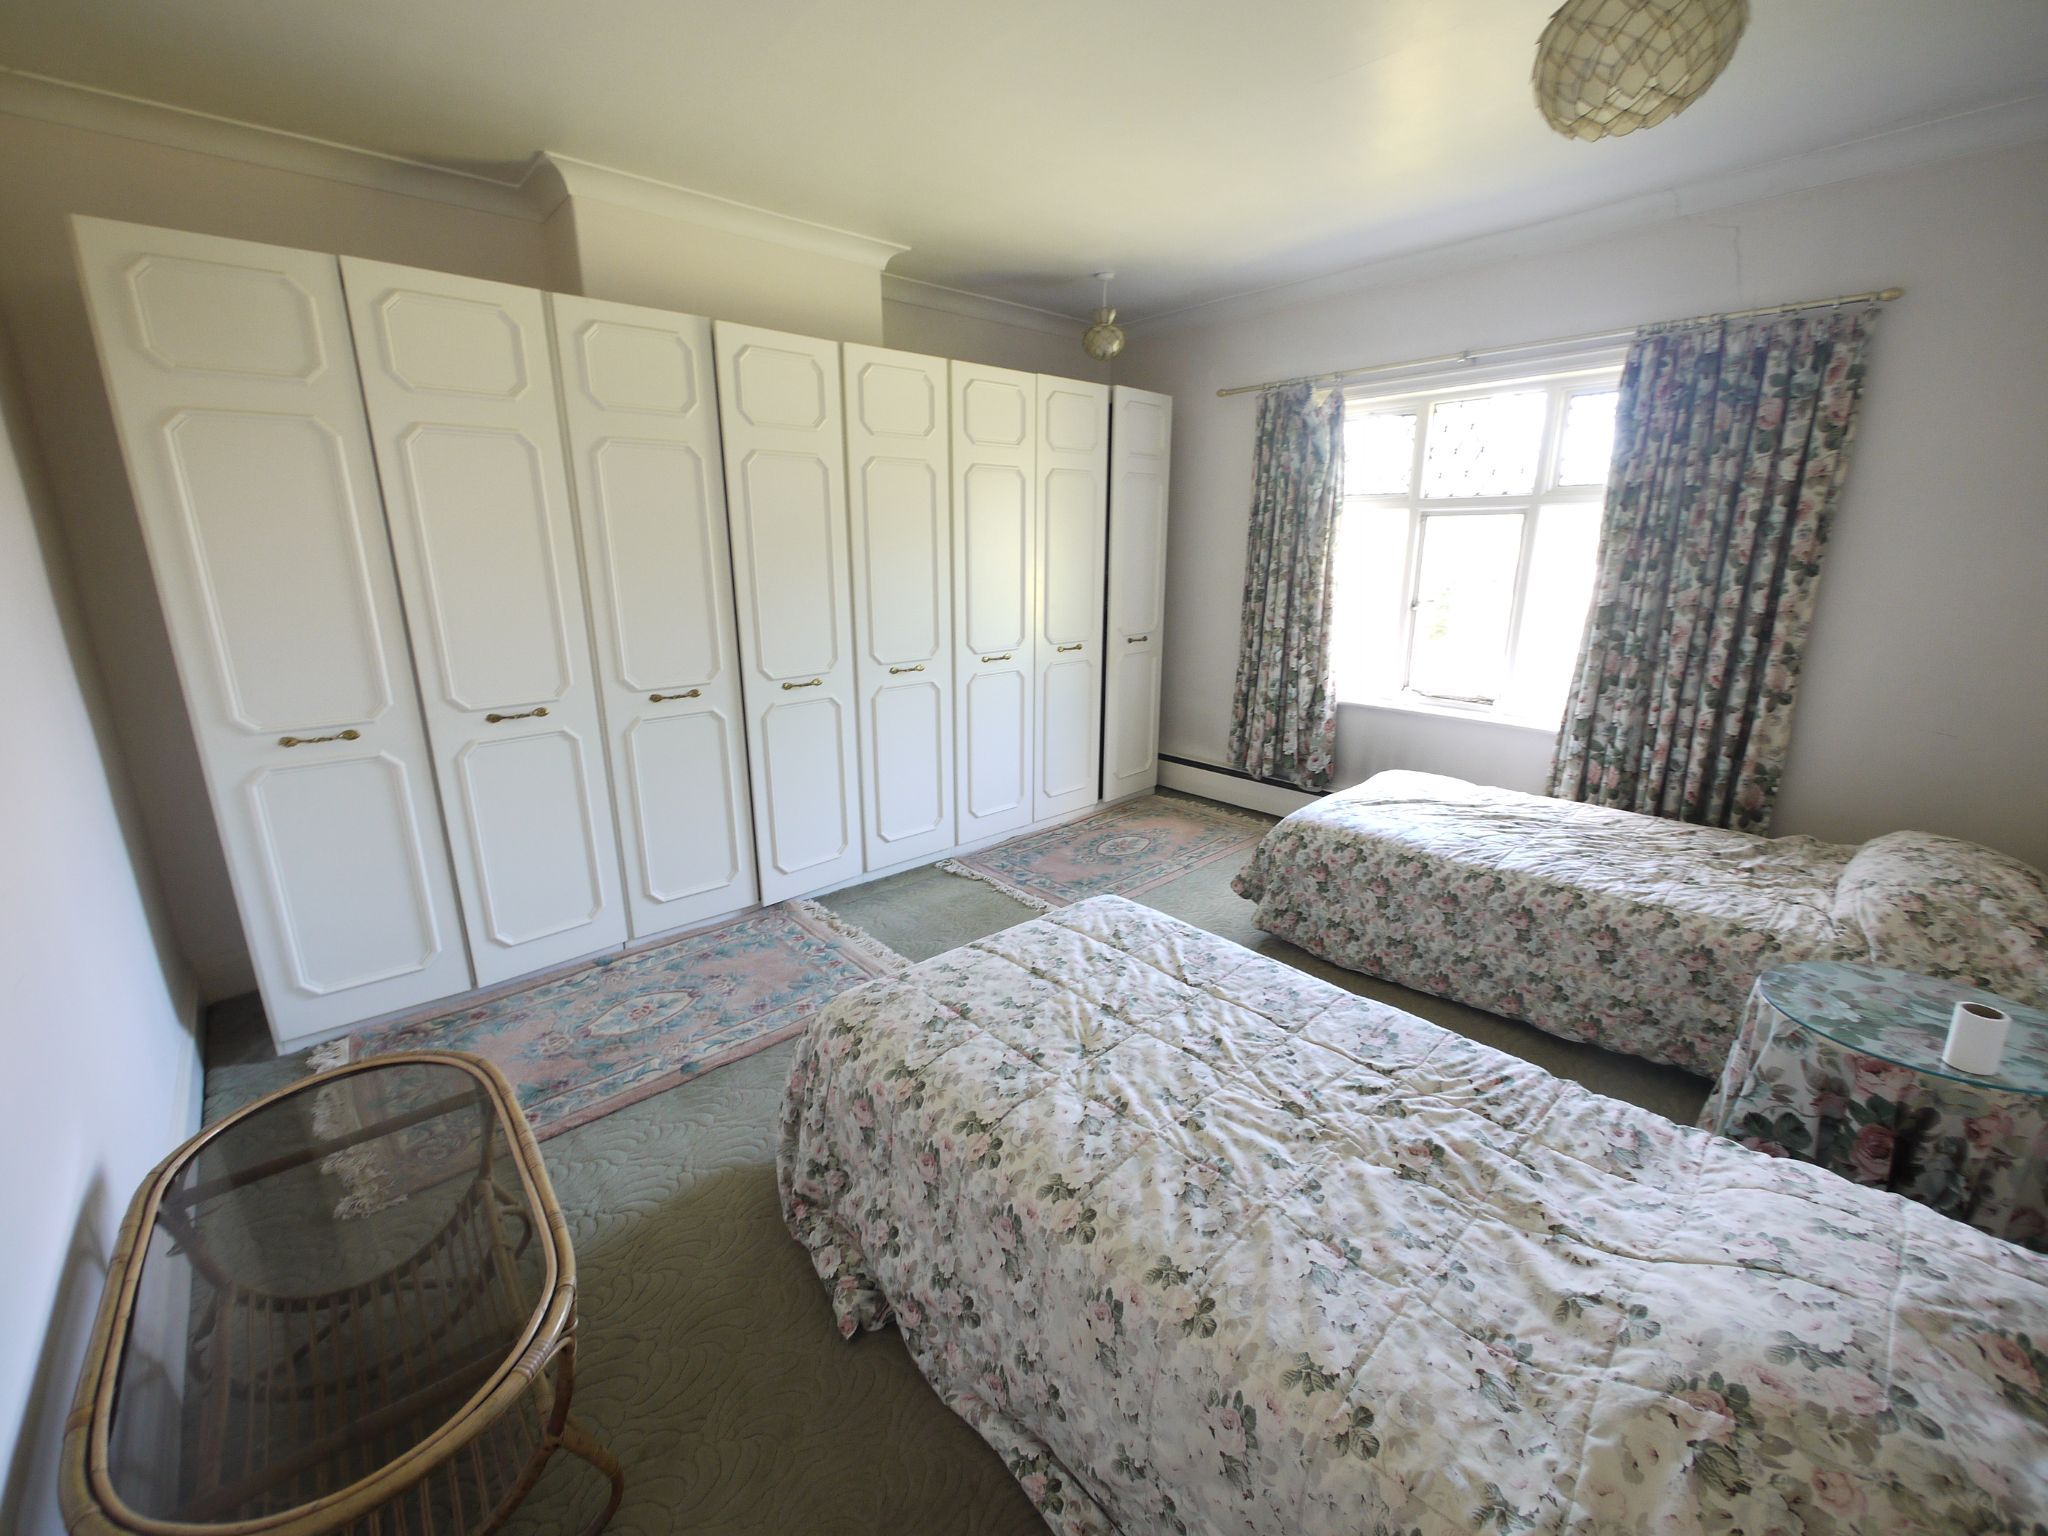 4 bedroom semi-detached house SSTC in Brighouse - Bedroom 2.